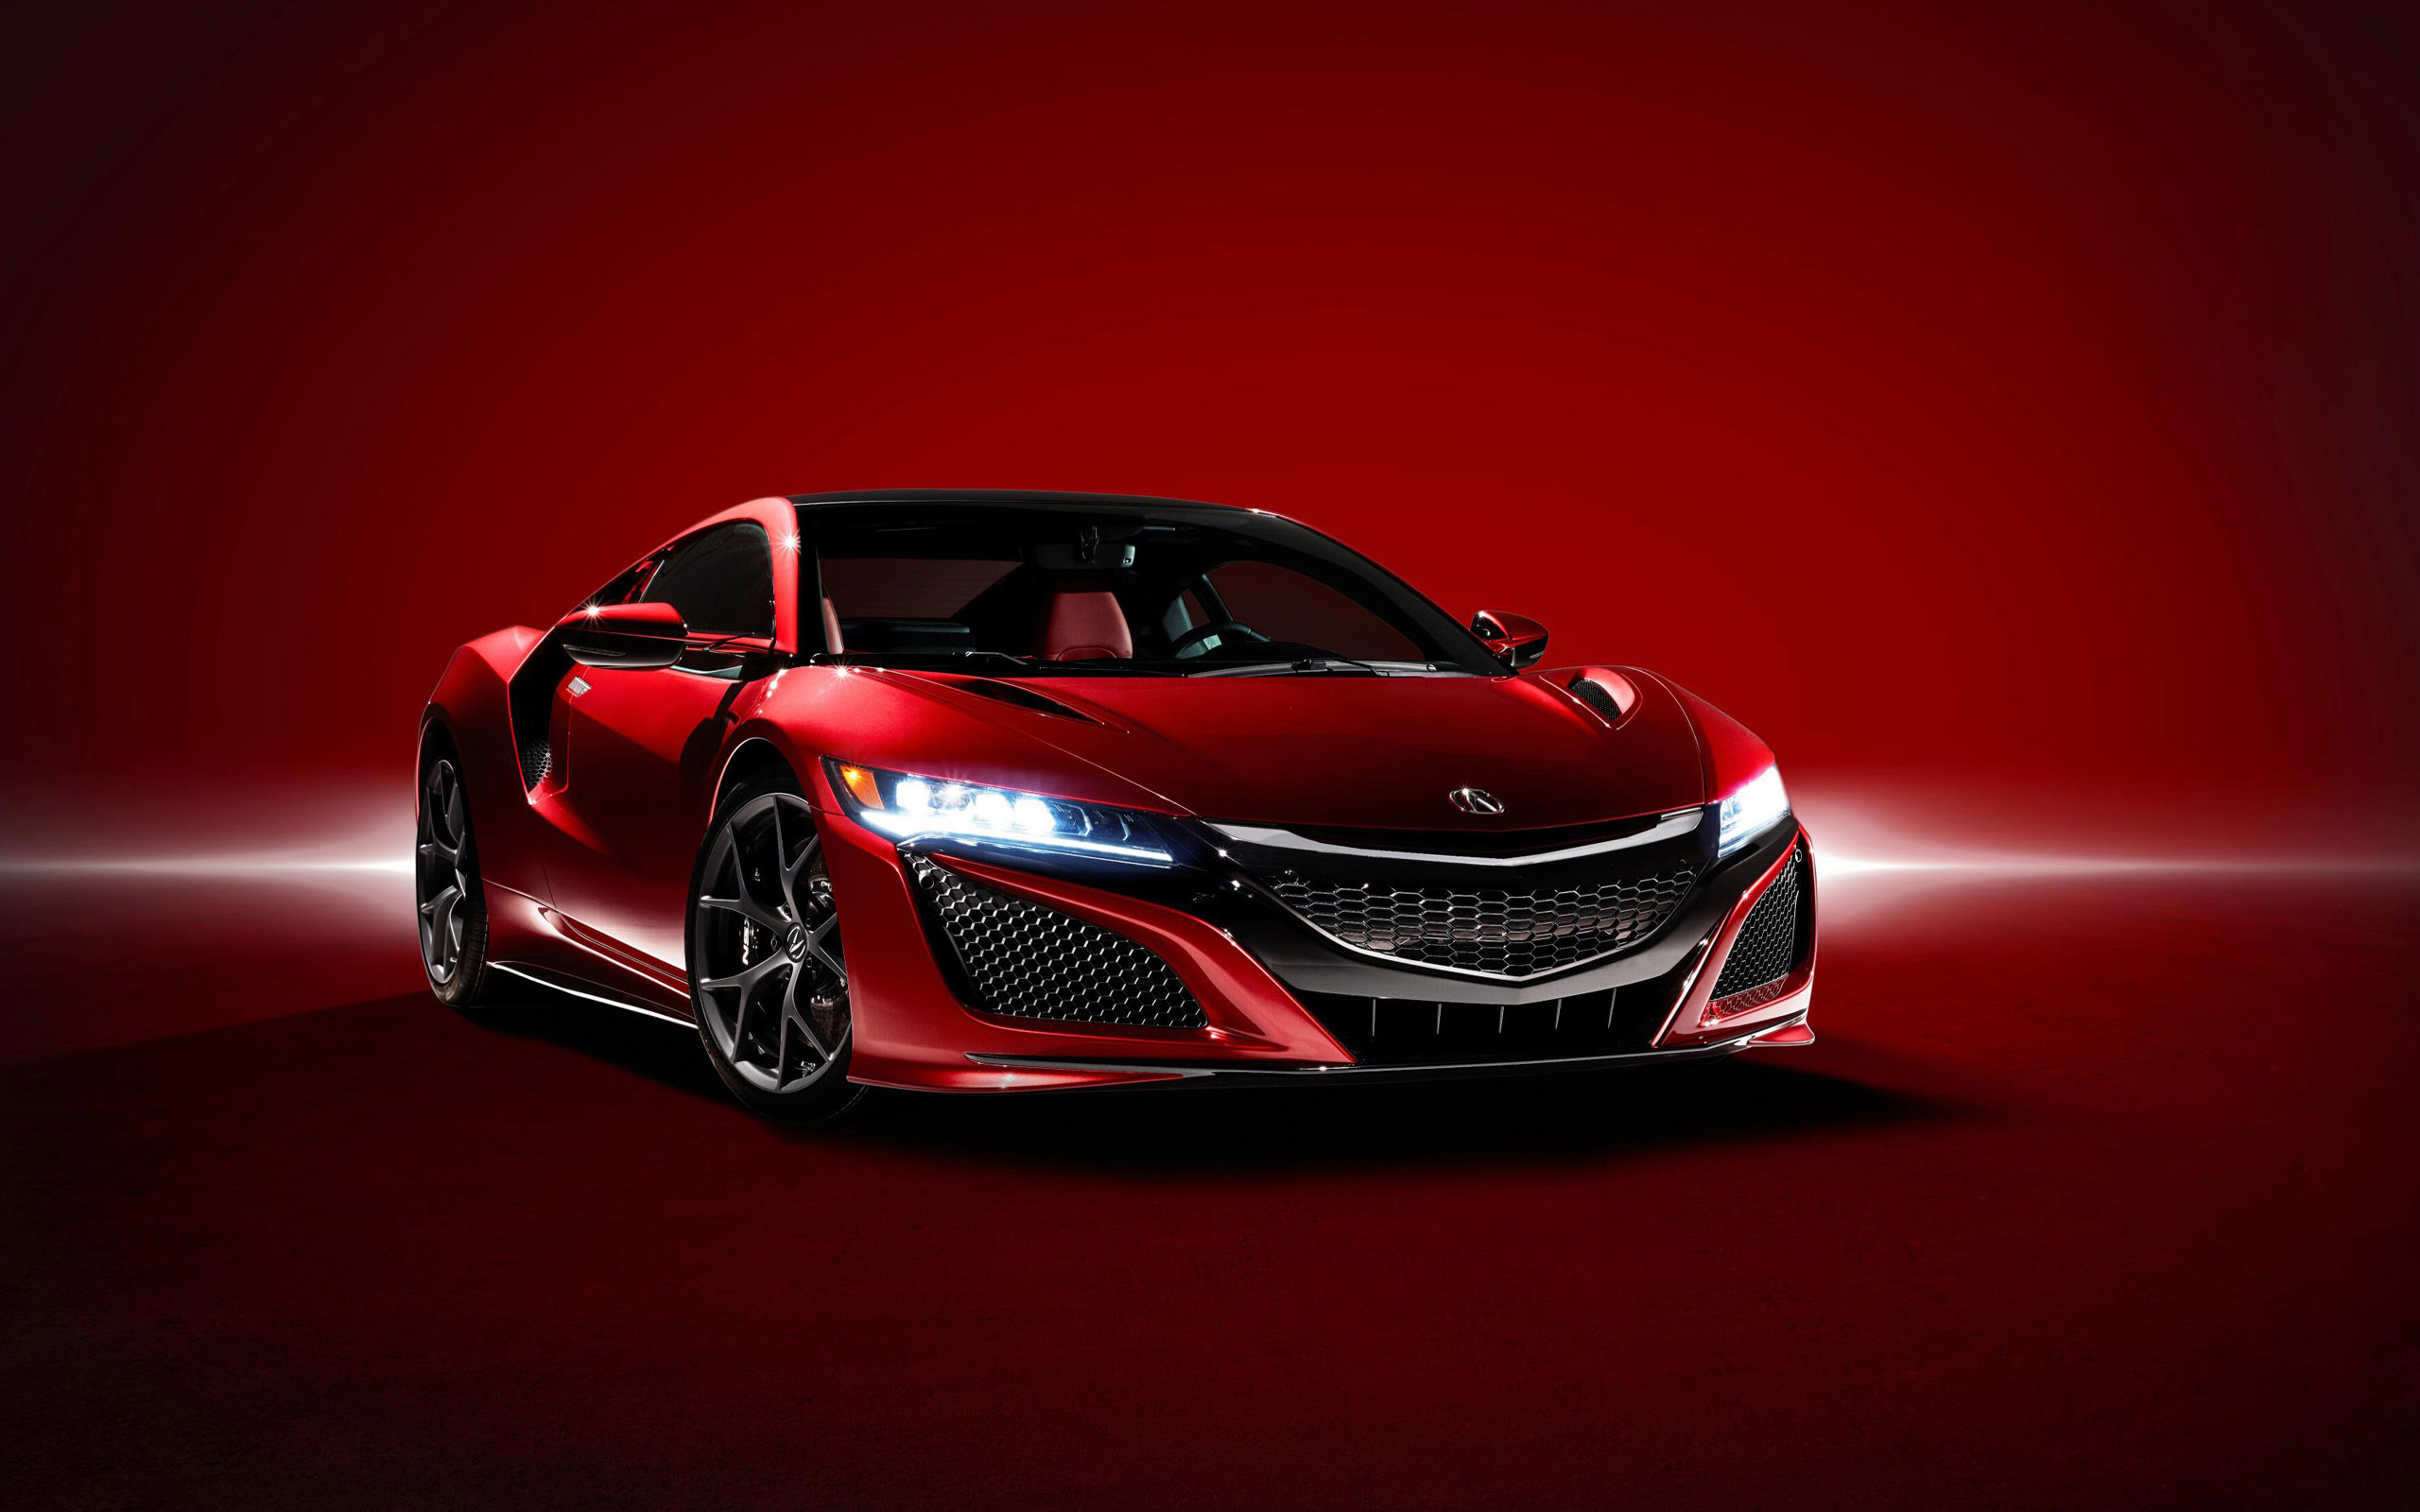 Acura Nsx Supercar Wallpaper Hd Car Wallpapers